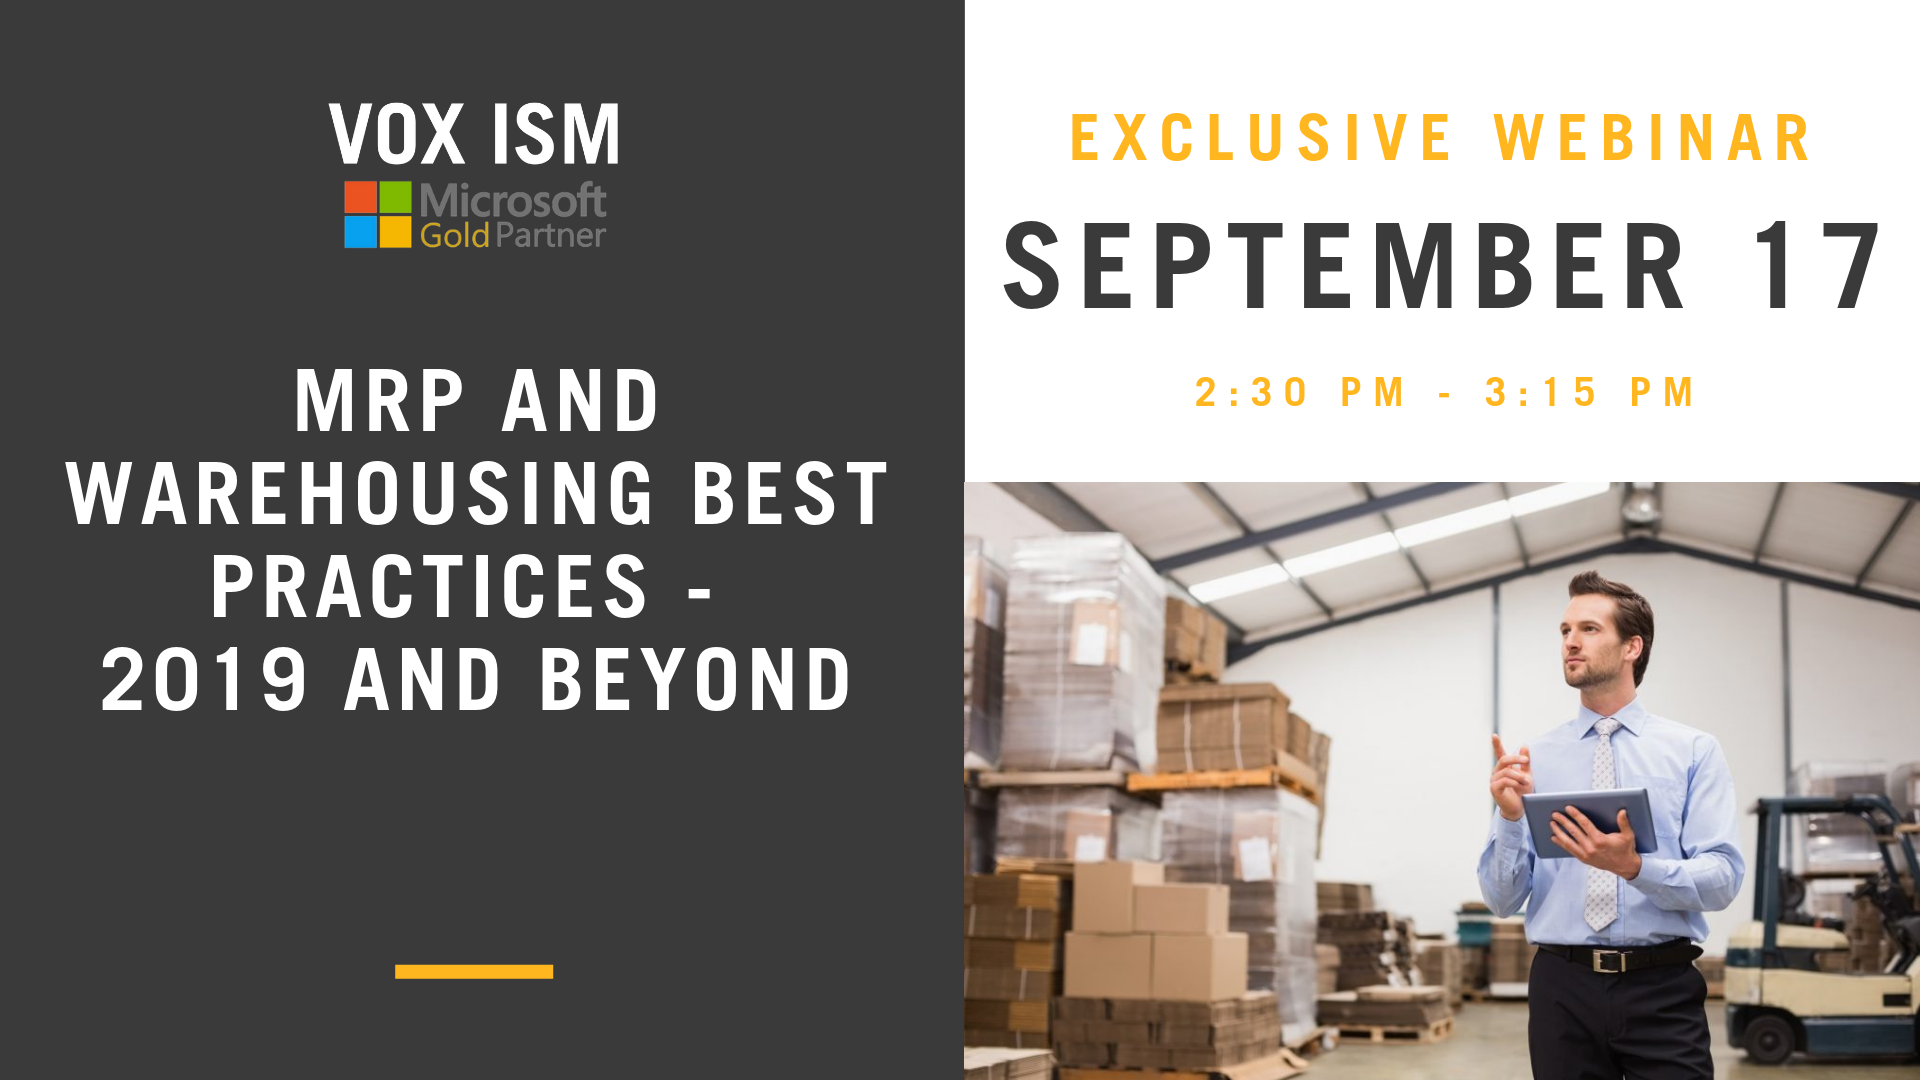 MRP and Warehousing Best Practices - 2019 and Beyond - September 17 - Webinar - VOX ISM